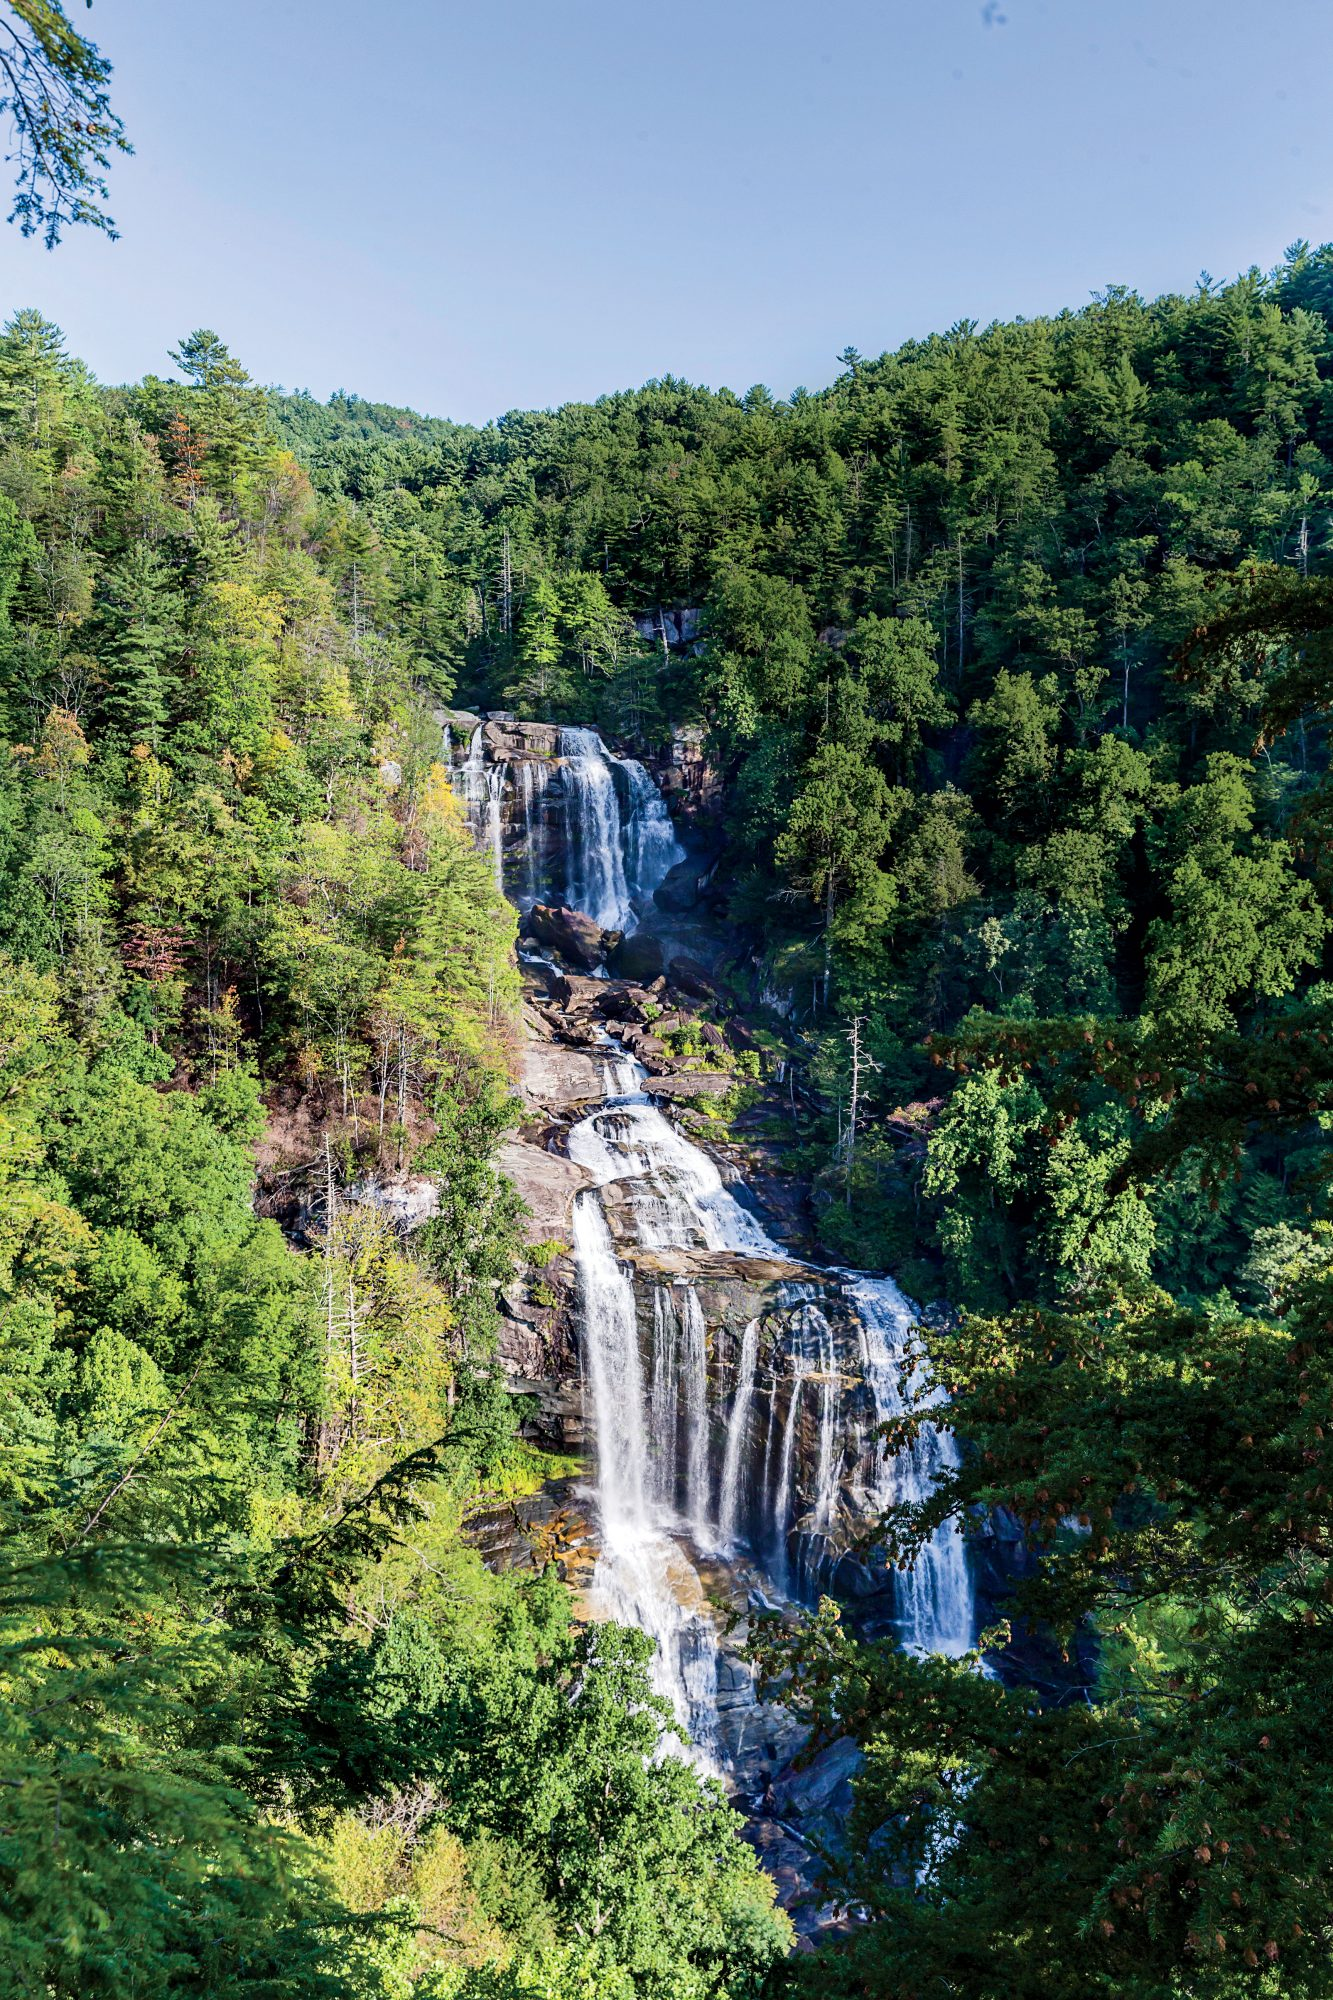 Whitewater Falls in Cashiers, NC